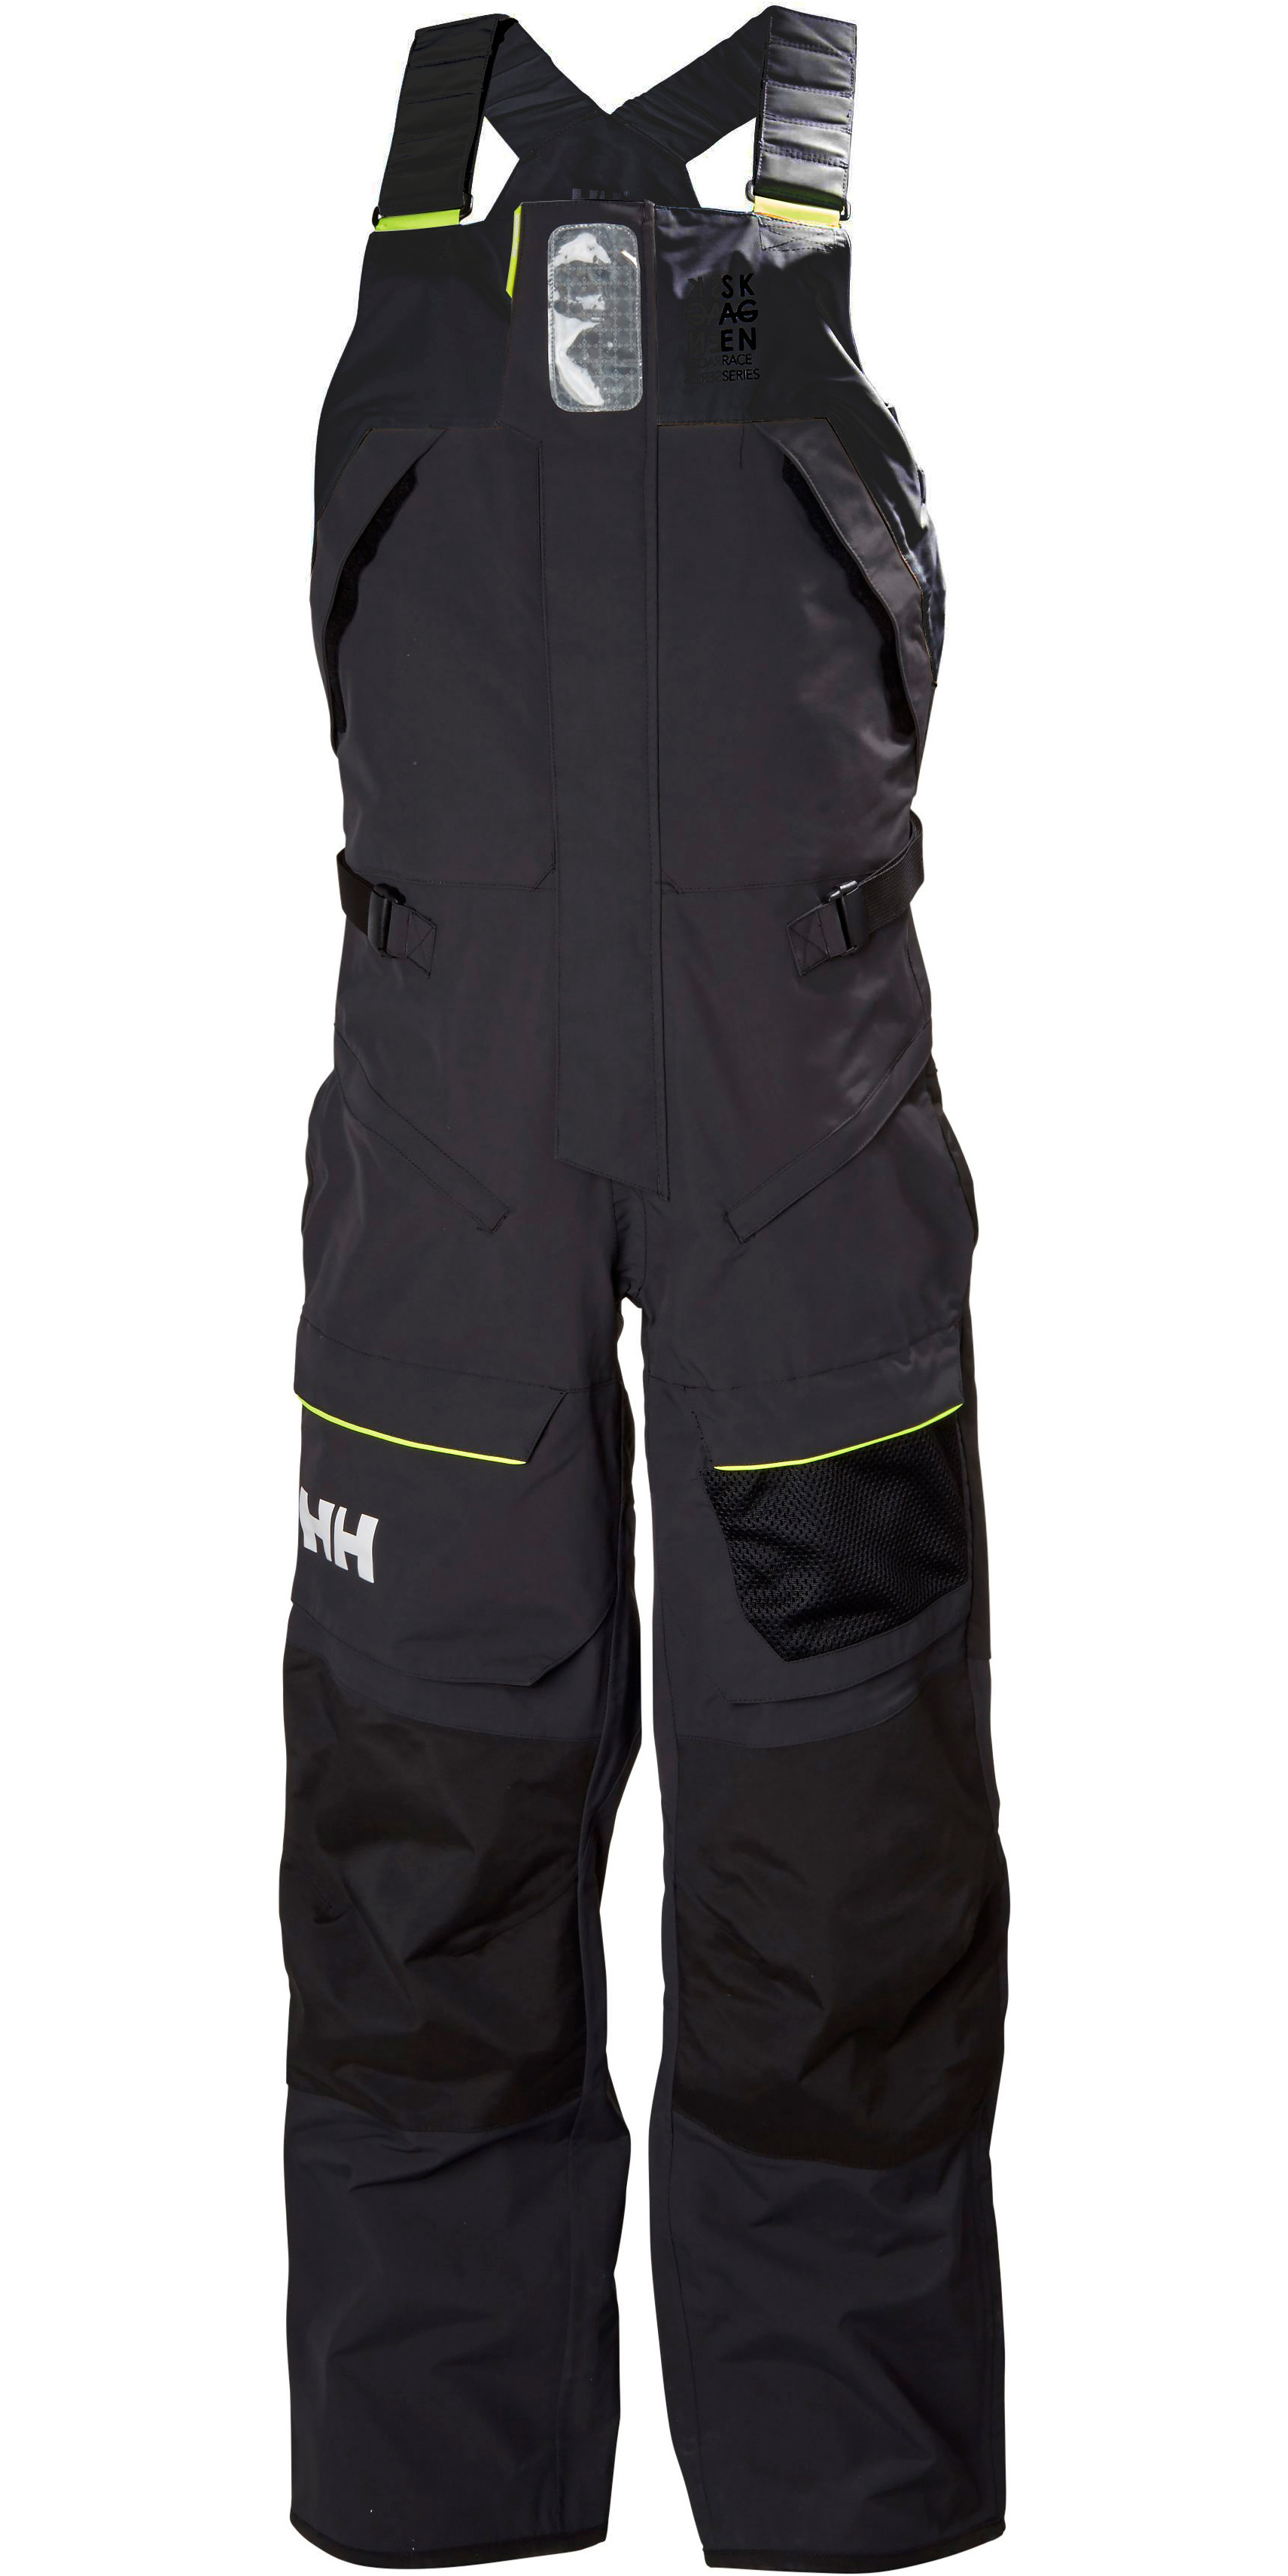 4687f8f76741f Helly Hansen Womens Trouser Skagen Offshore Bib 33921 | Sailing | Yachting  | Trouser | Wetsuitoutlet | Wetsuit Outlet